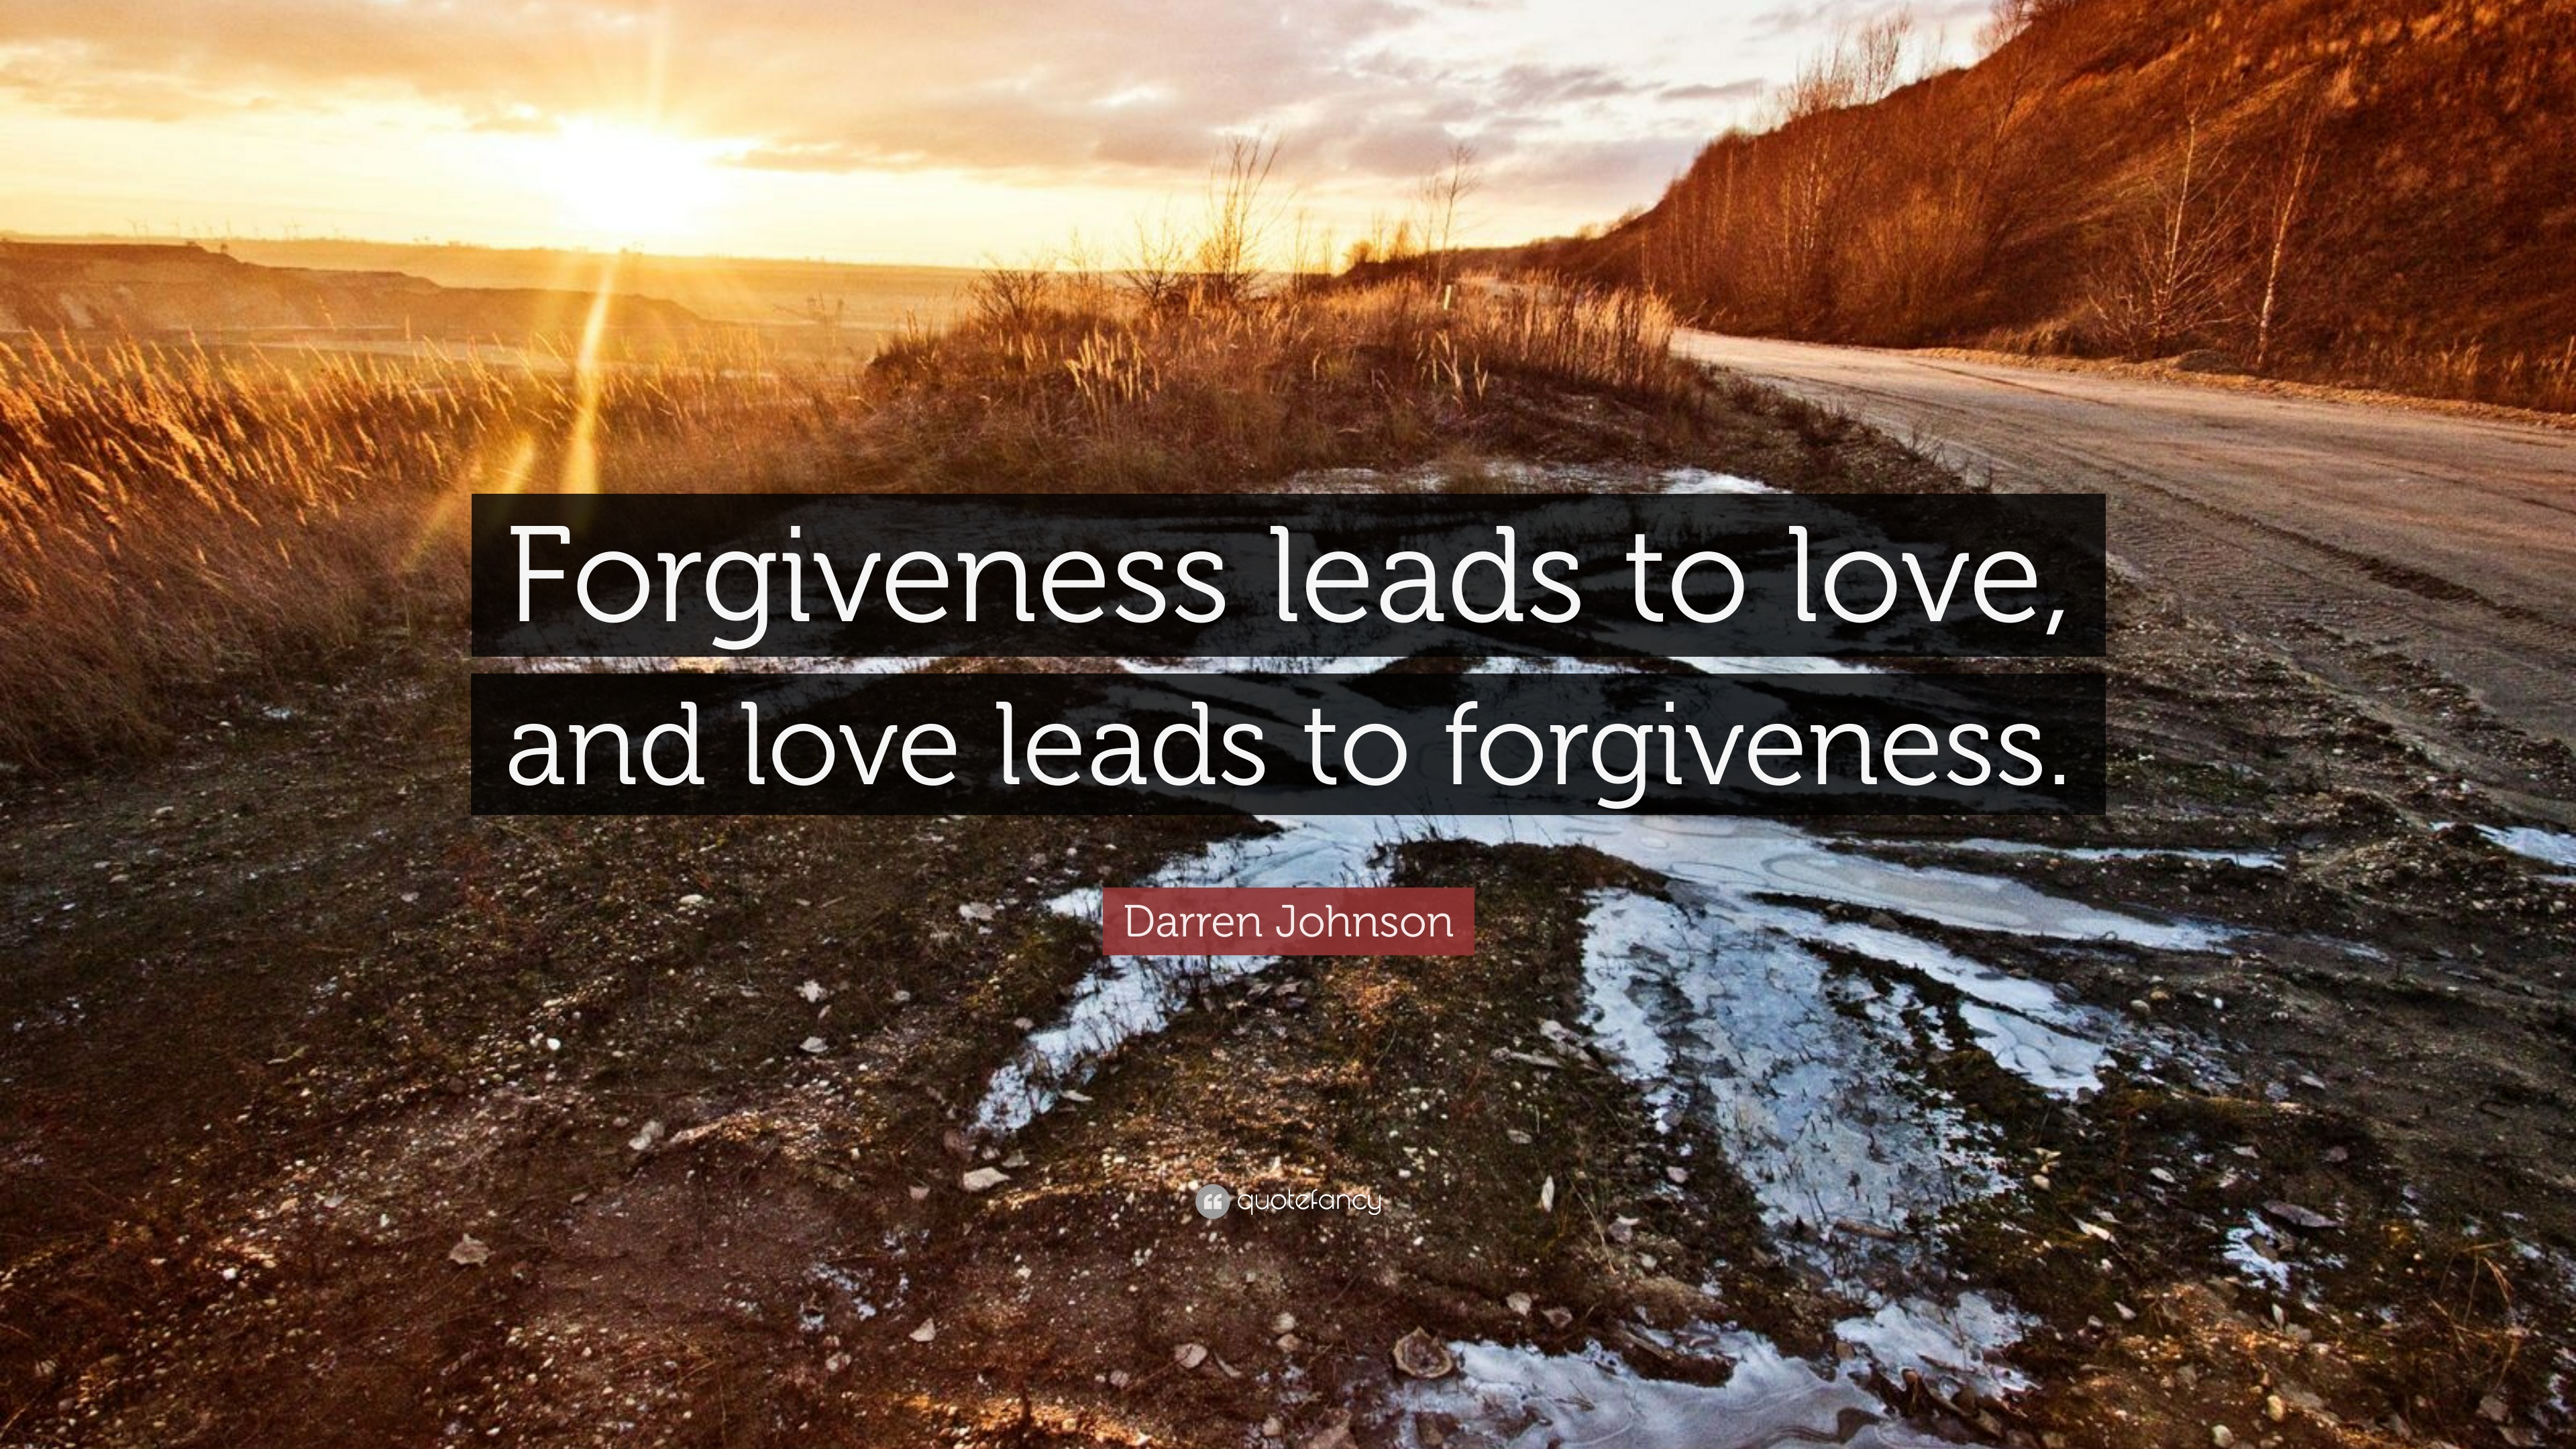 Bon Darren Johnson Quote: U201cForgiveness Leads To Love, And Love Leads To  Forgiveness.